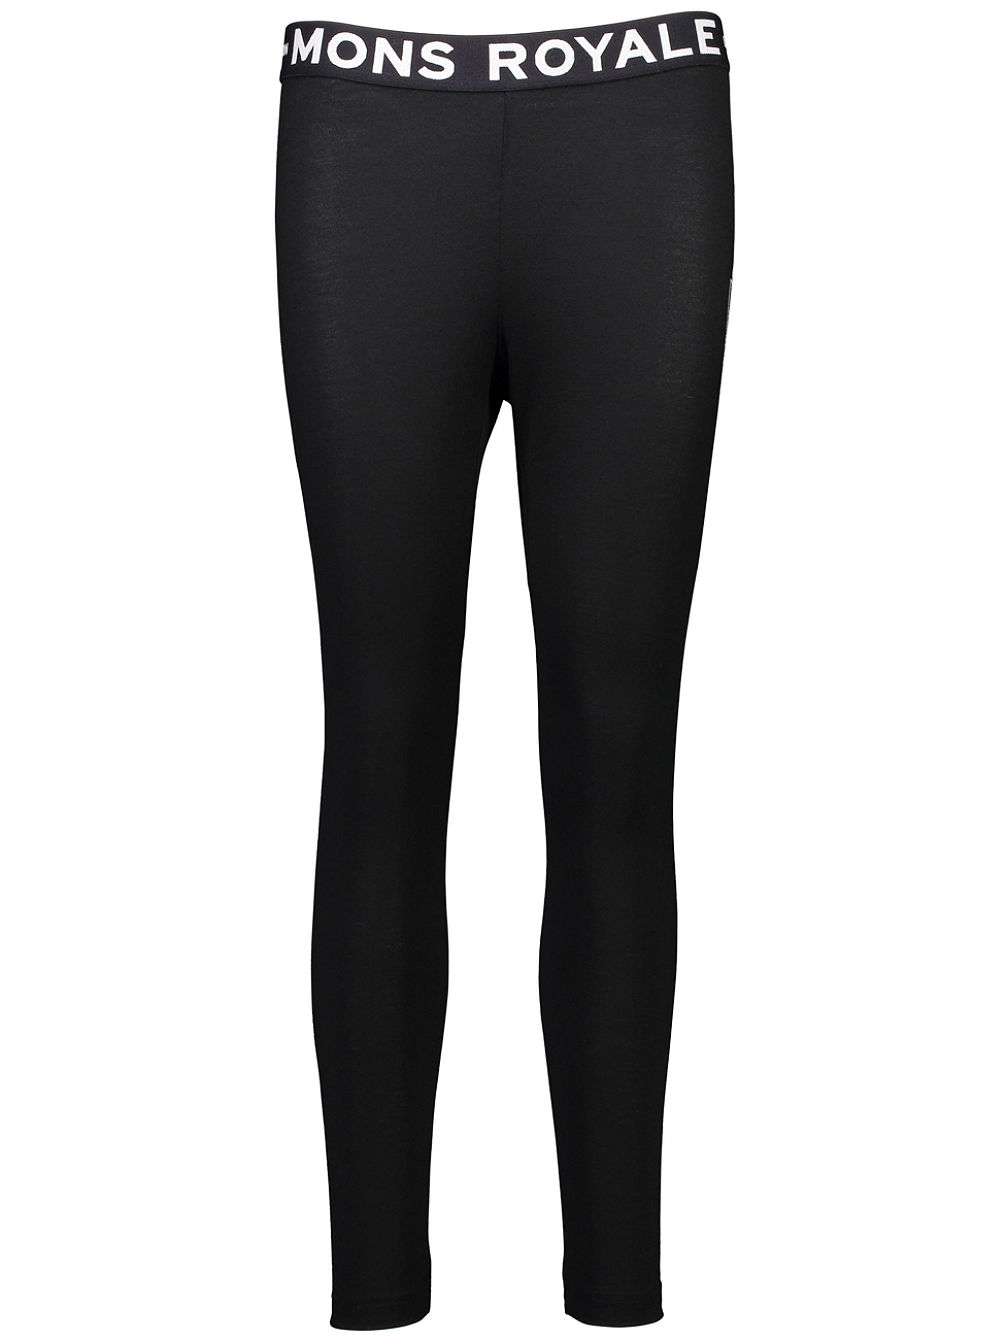 Merino Christy Folo Tech Leggings